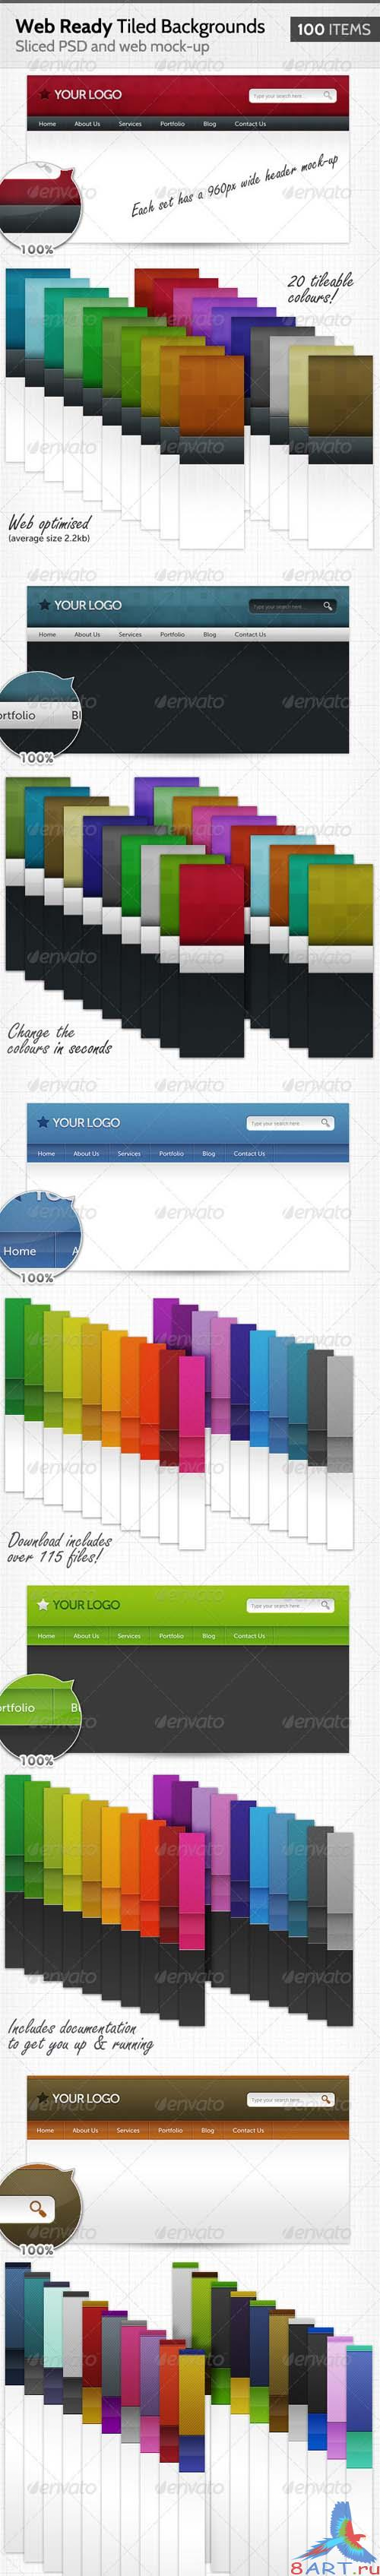 GraphicRiver 100 Web Ready Tiled Backgrounds - REUPLOAD